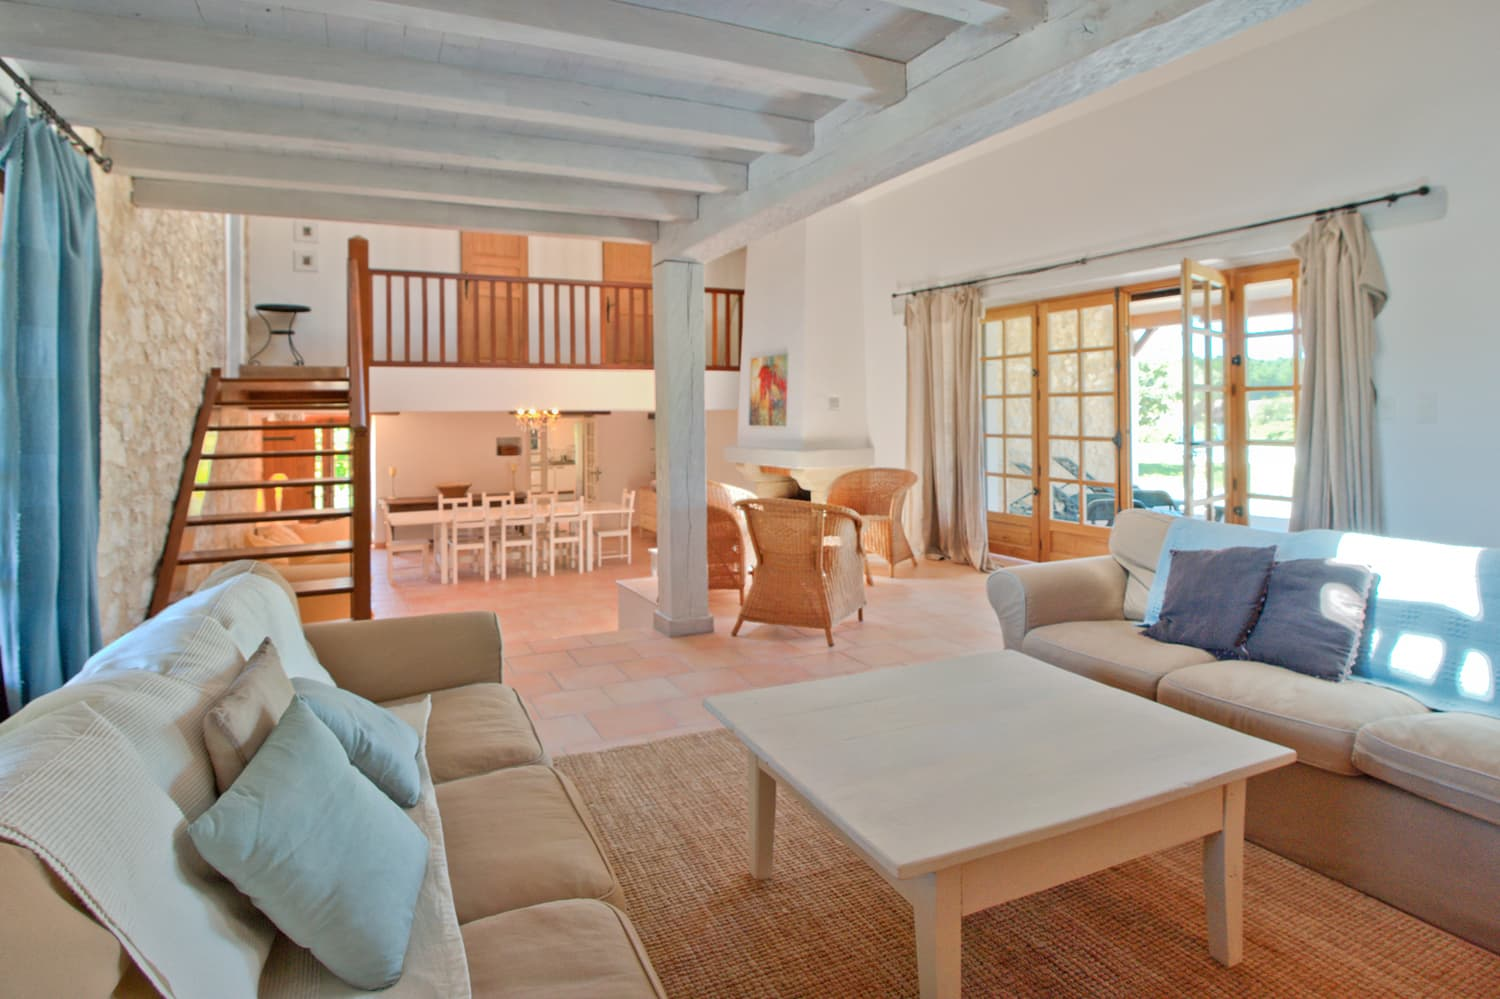 Living and dining room in South West France holiday accommodation